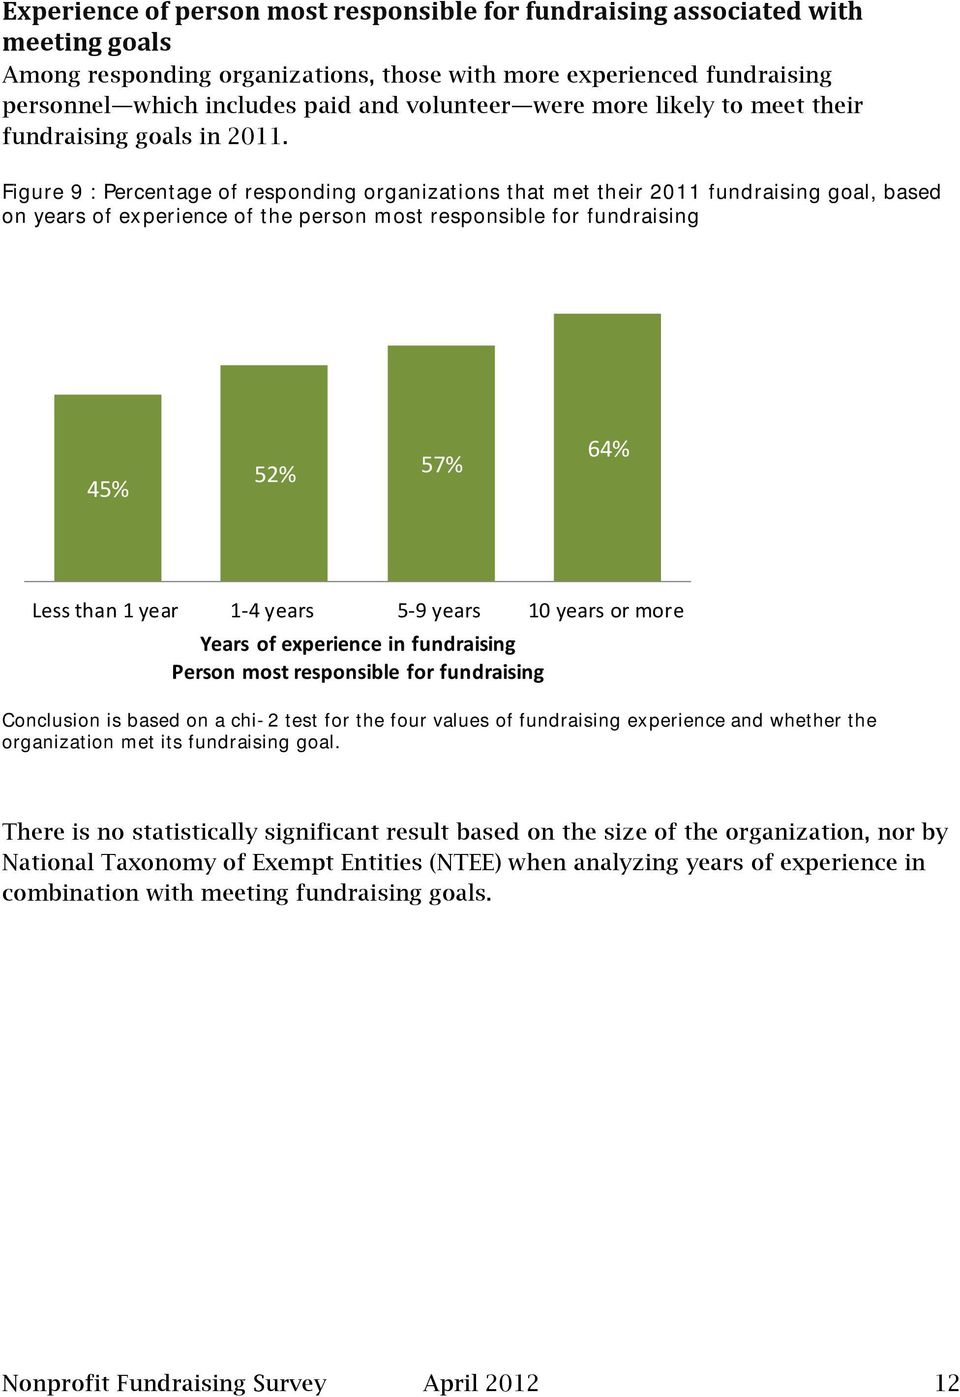 Figure 9 : Percentage of responding organizations that met their 2011 fundraising goal, based on years of experience of the person most responsible for fundraising 45% 52% 57% 64% Less than 1 year 1